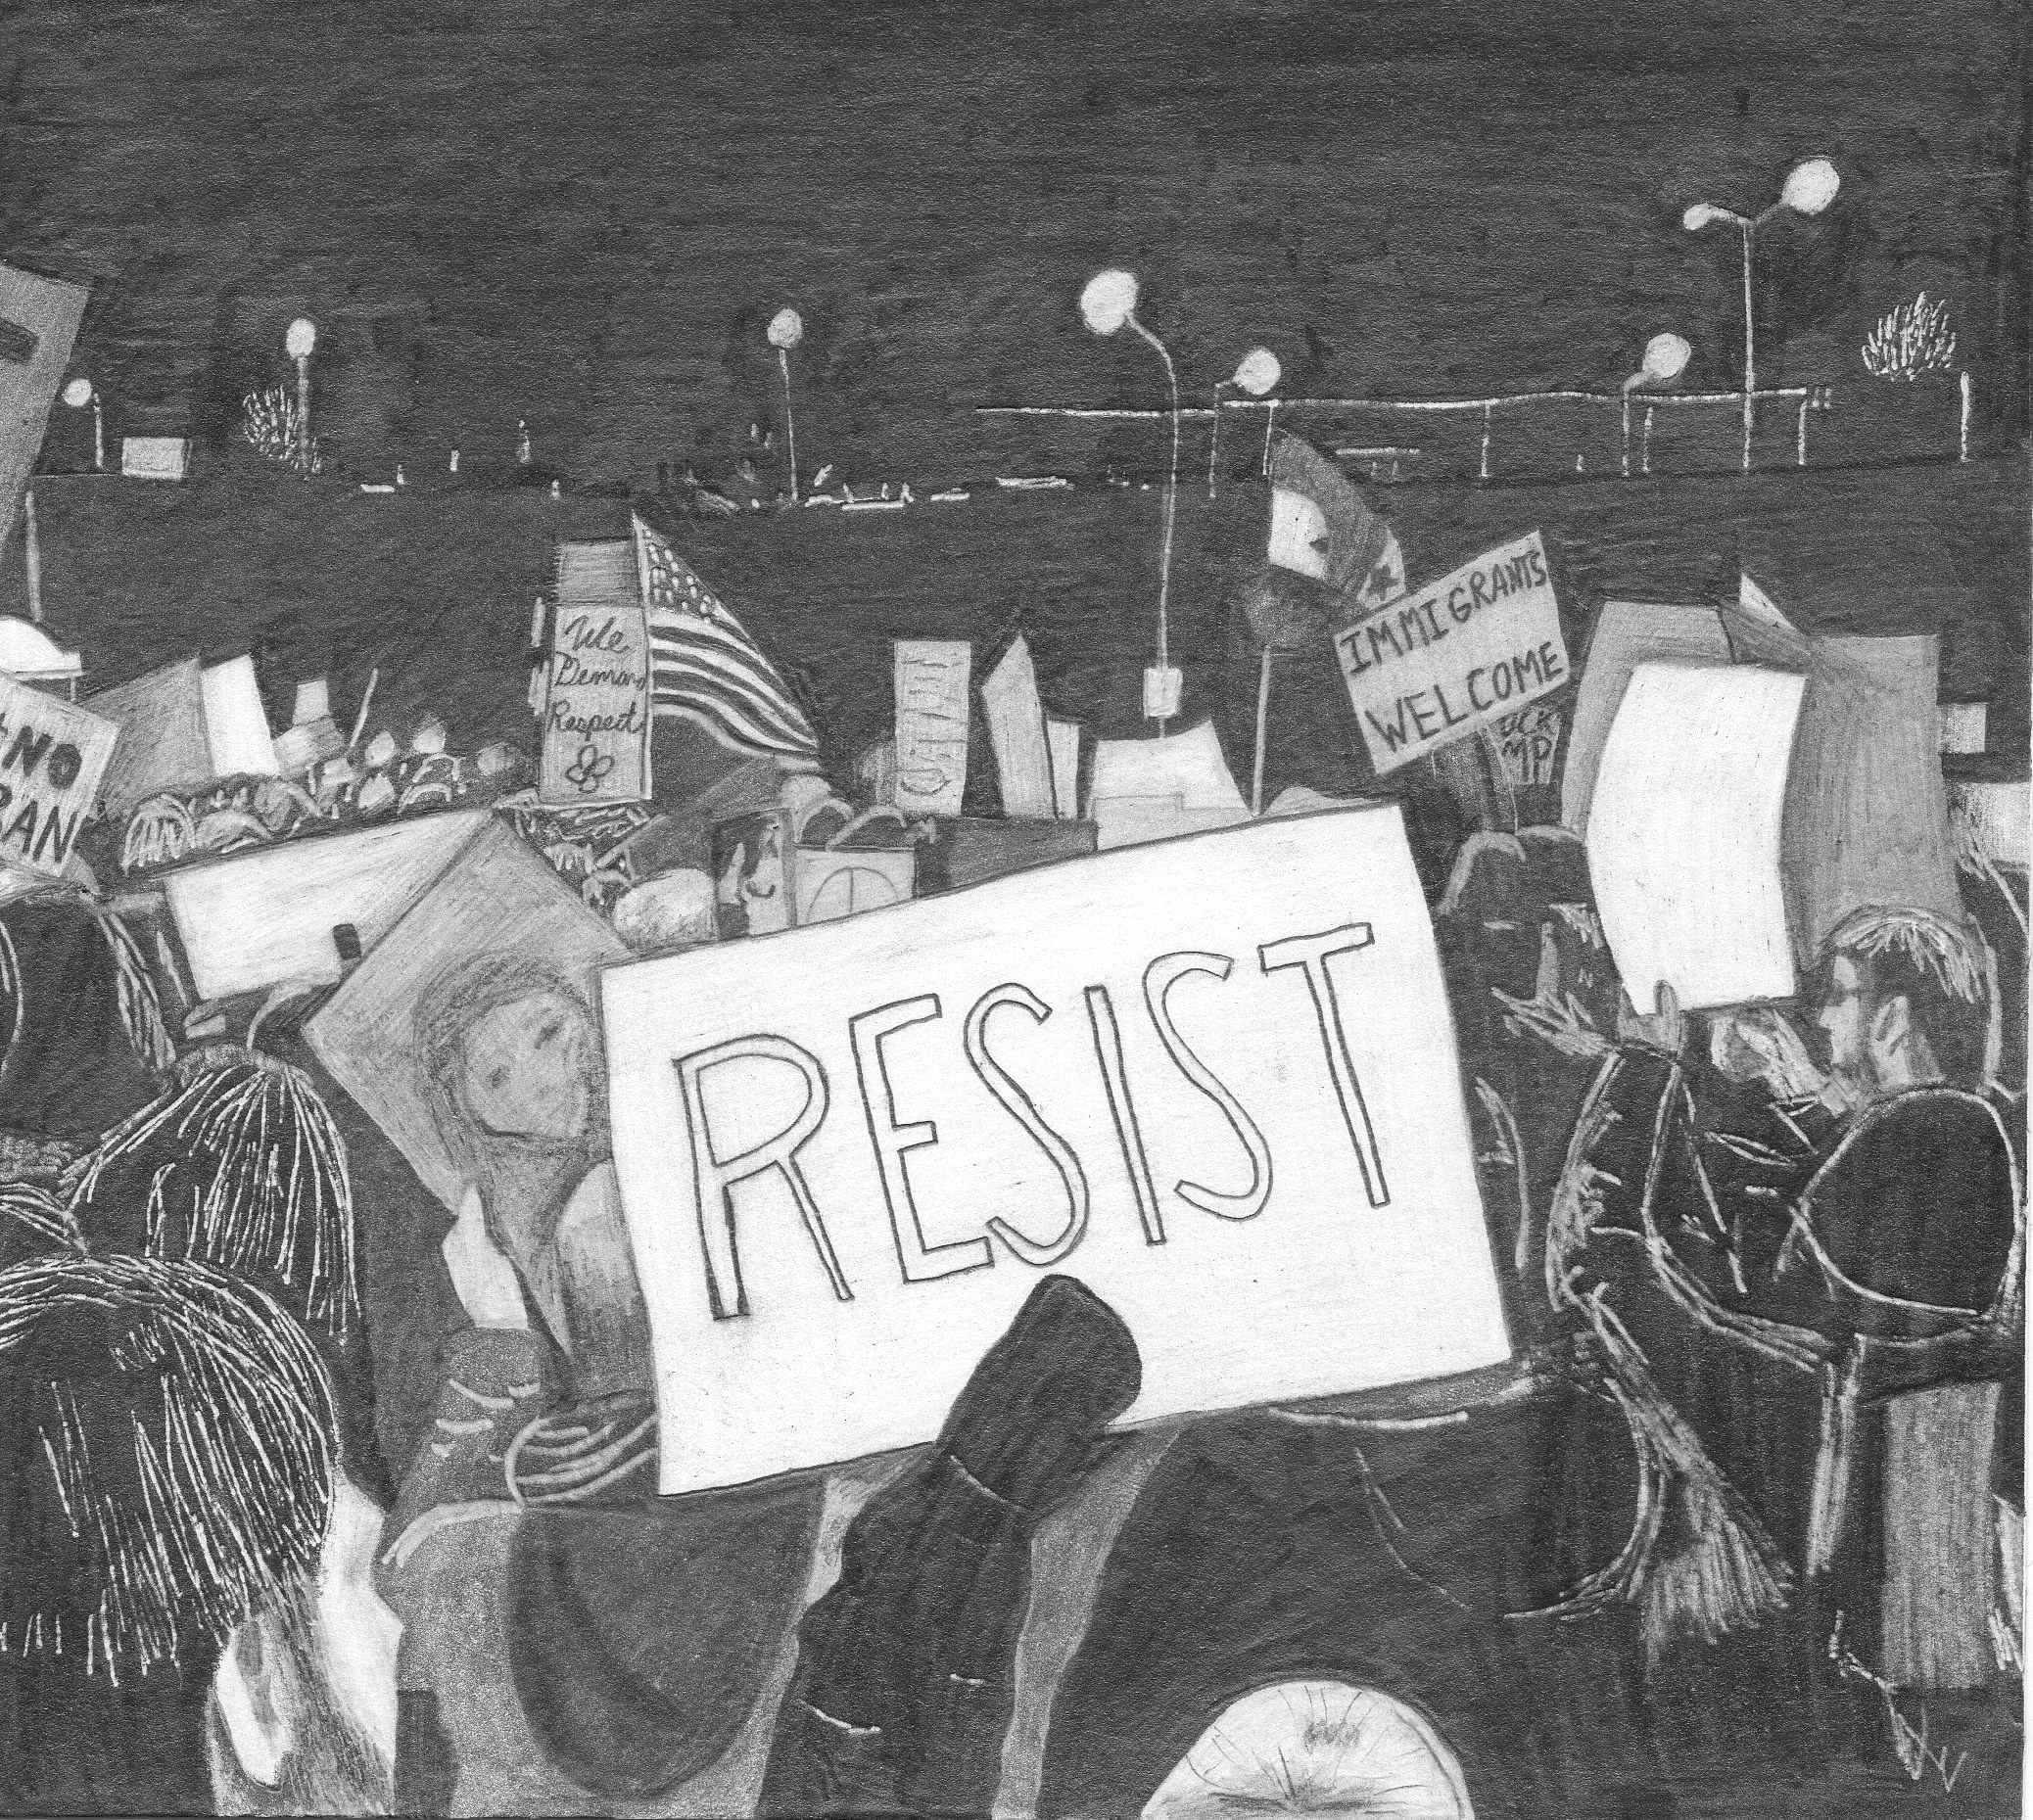 RESIST Pencil on paper 6 x 7 inches 2017